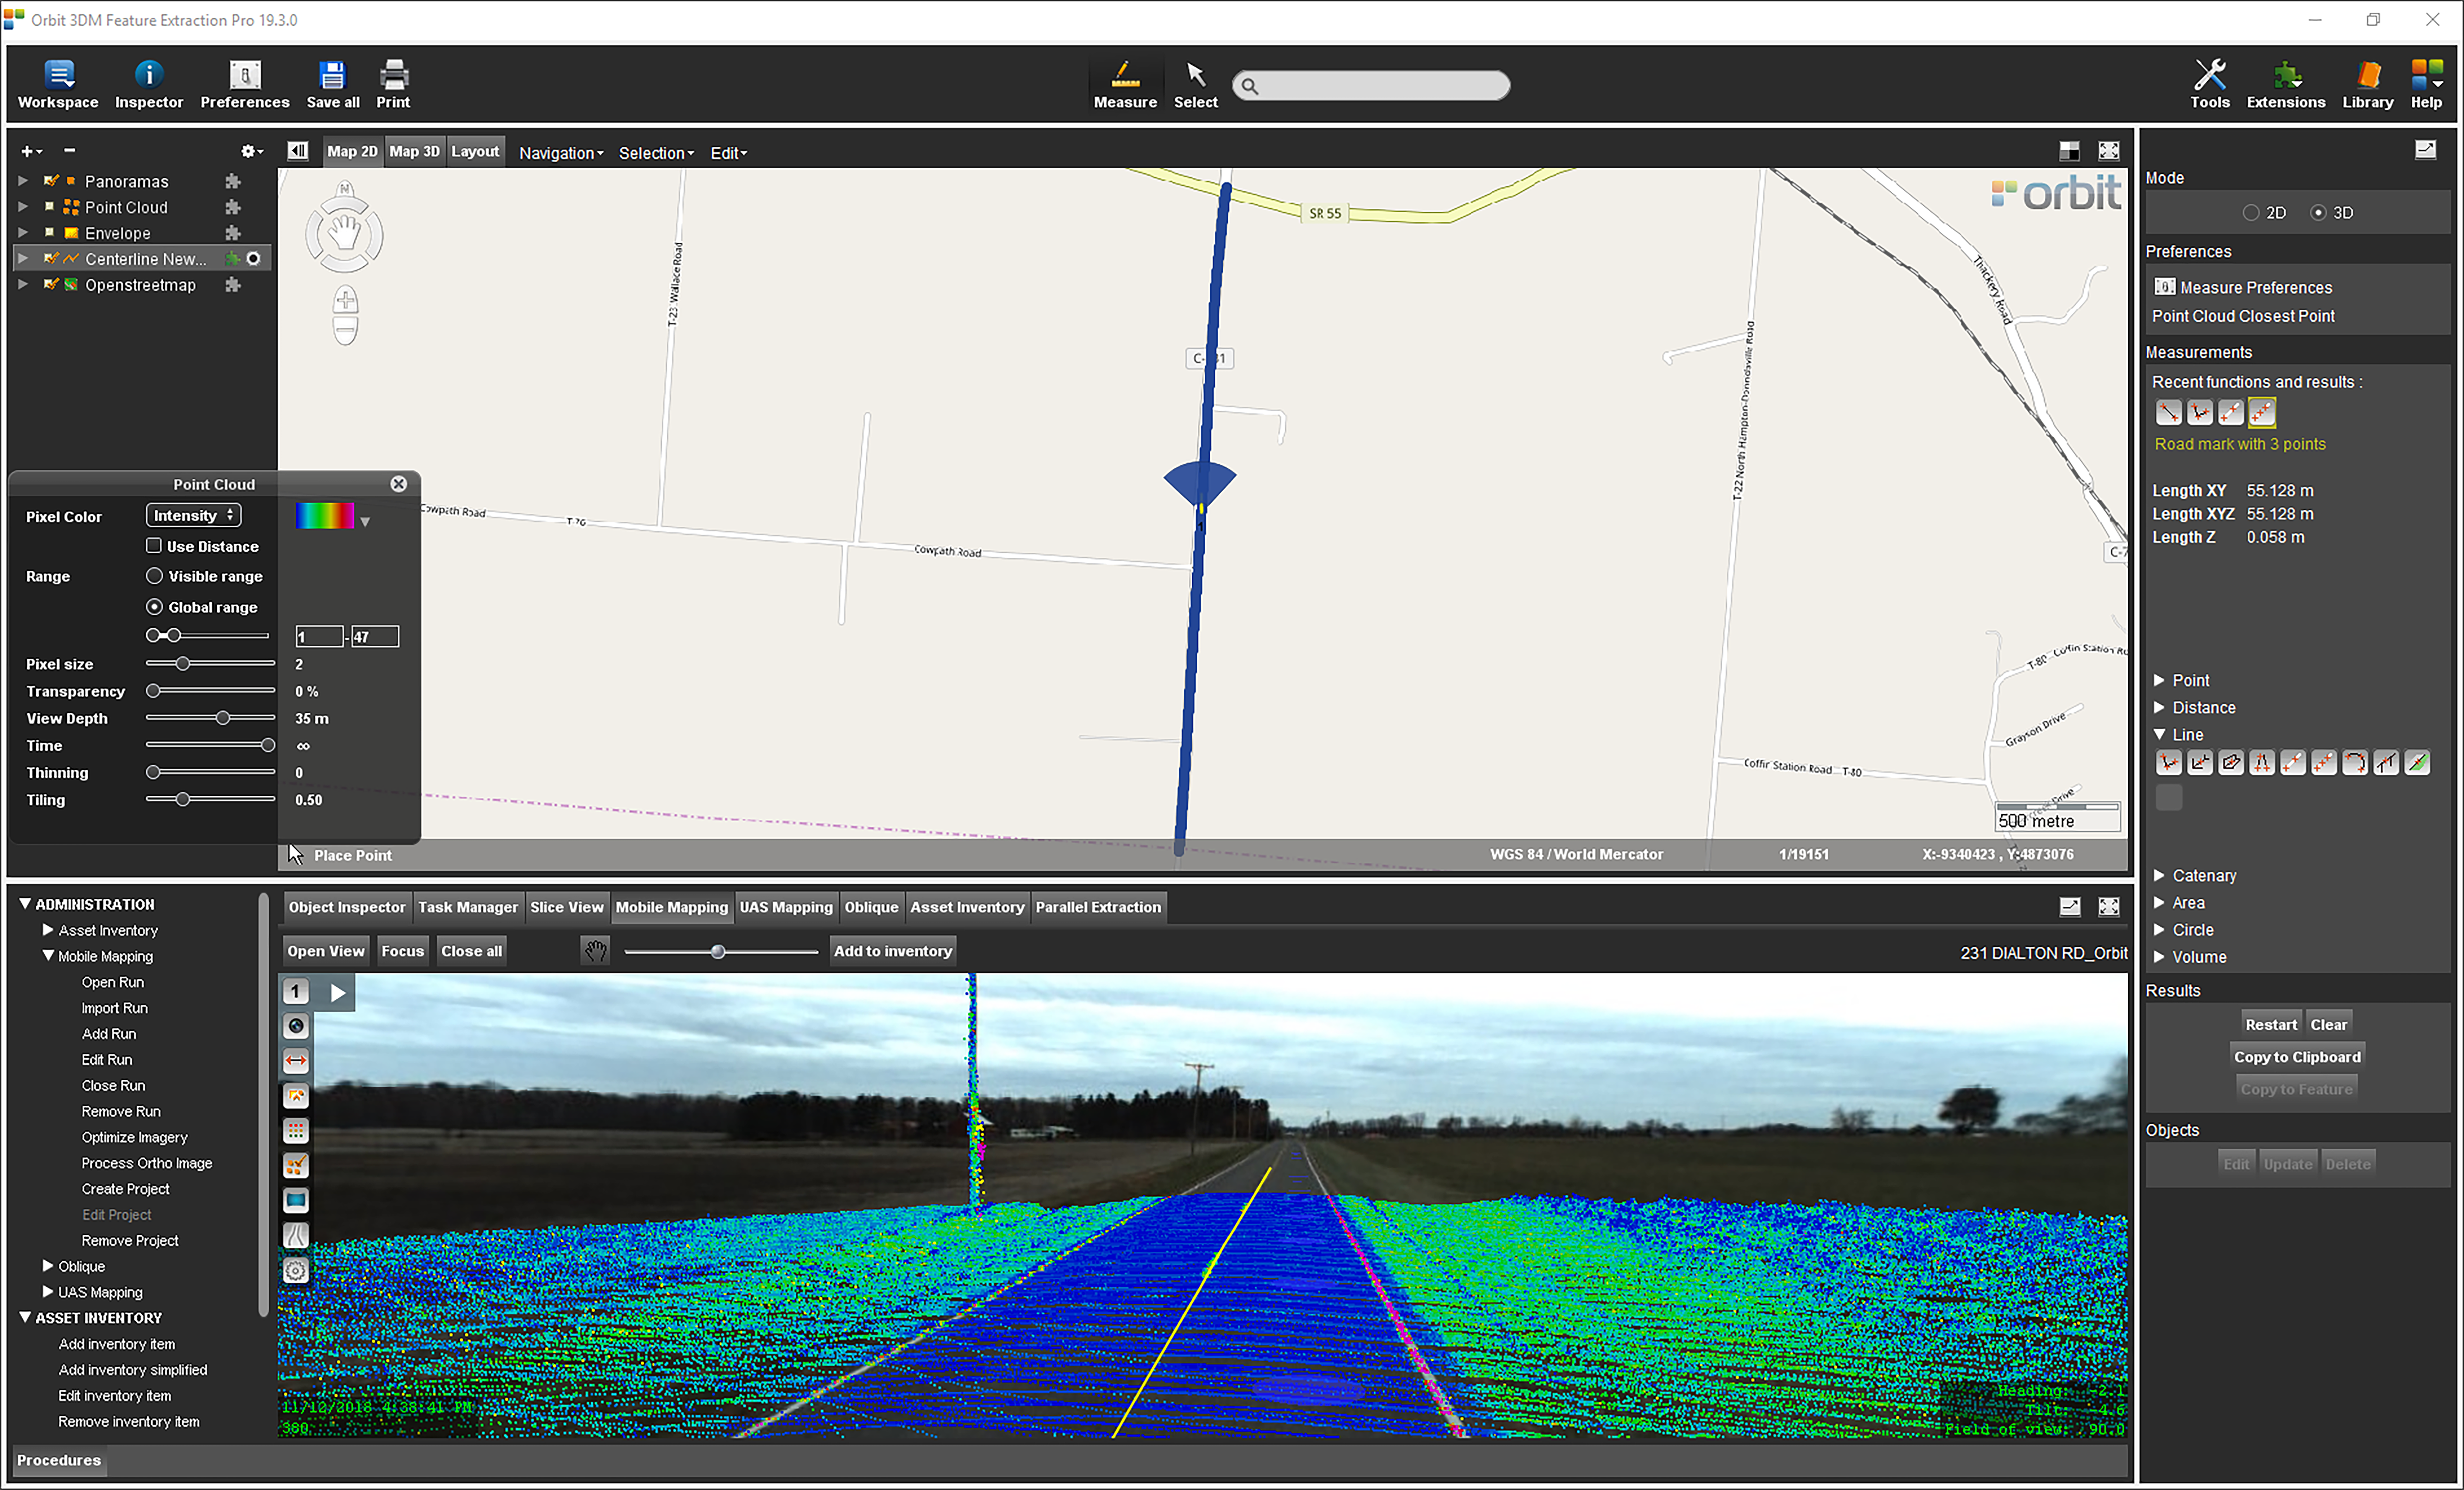 Orbit GT Mobile Mapping Redefines Pavement Marking Inventory in Ohio